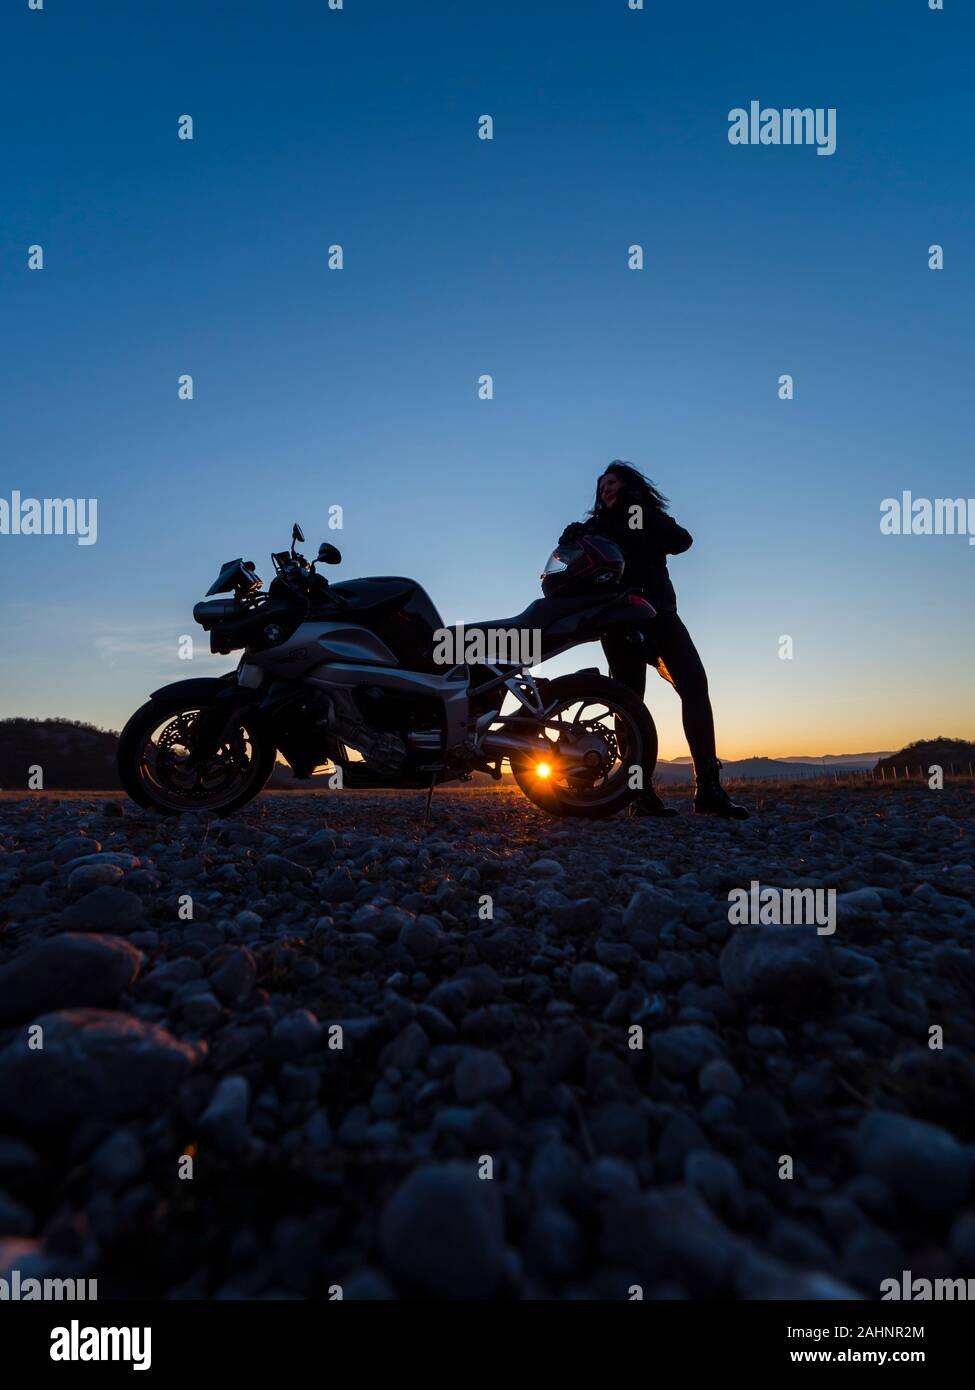 Sunset scenery scenic female motorcycle driver stretching her legs standing besides next to behind vehicle setting sun peek Stock Photo